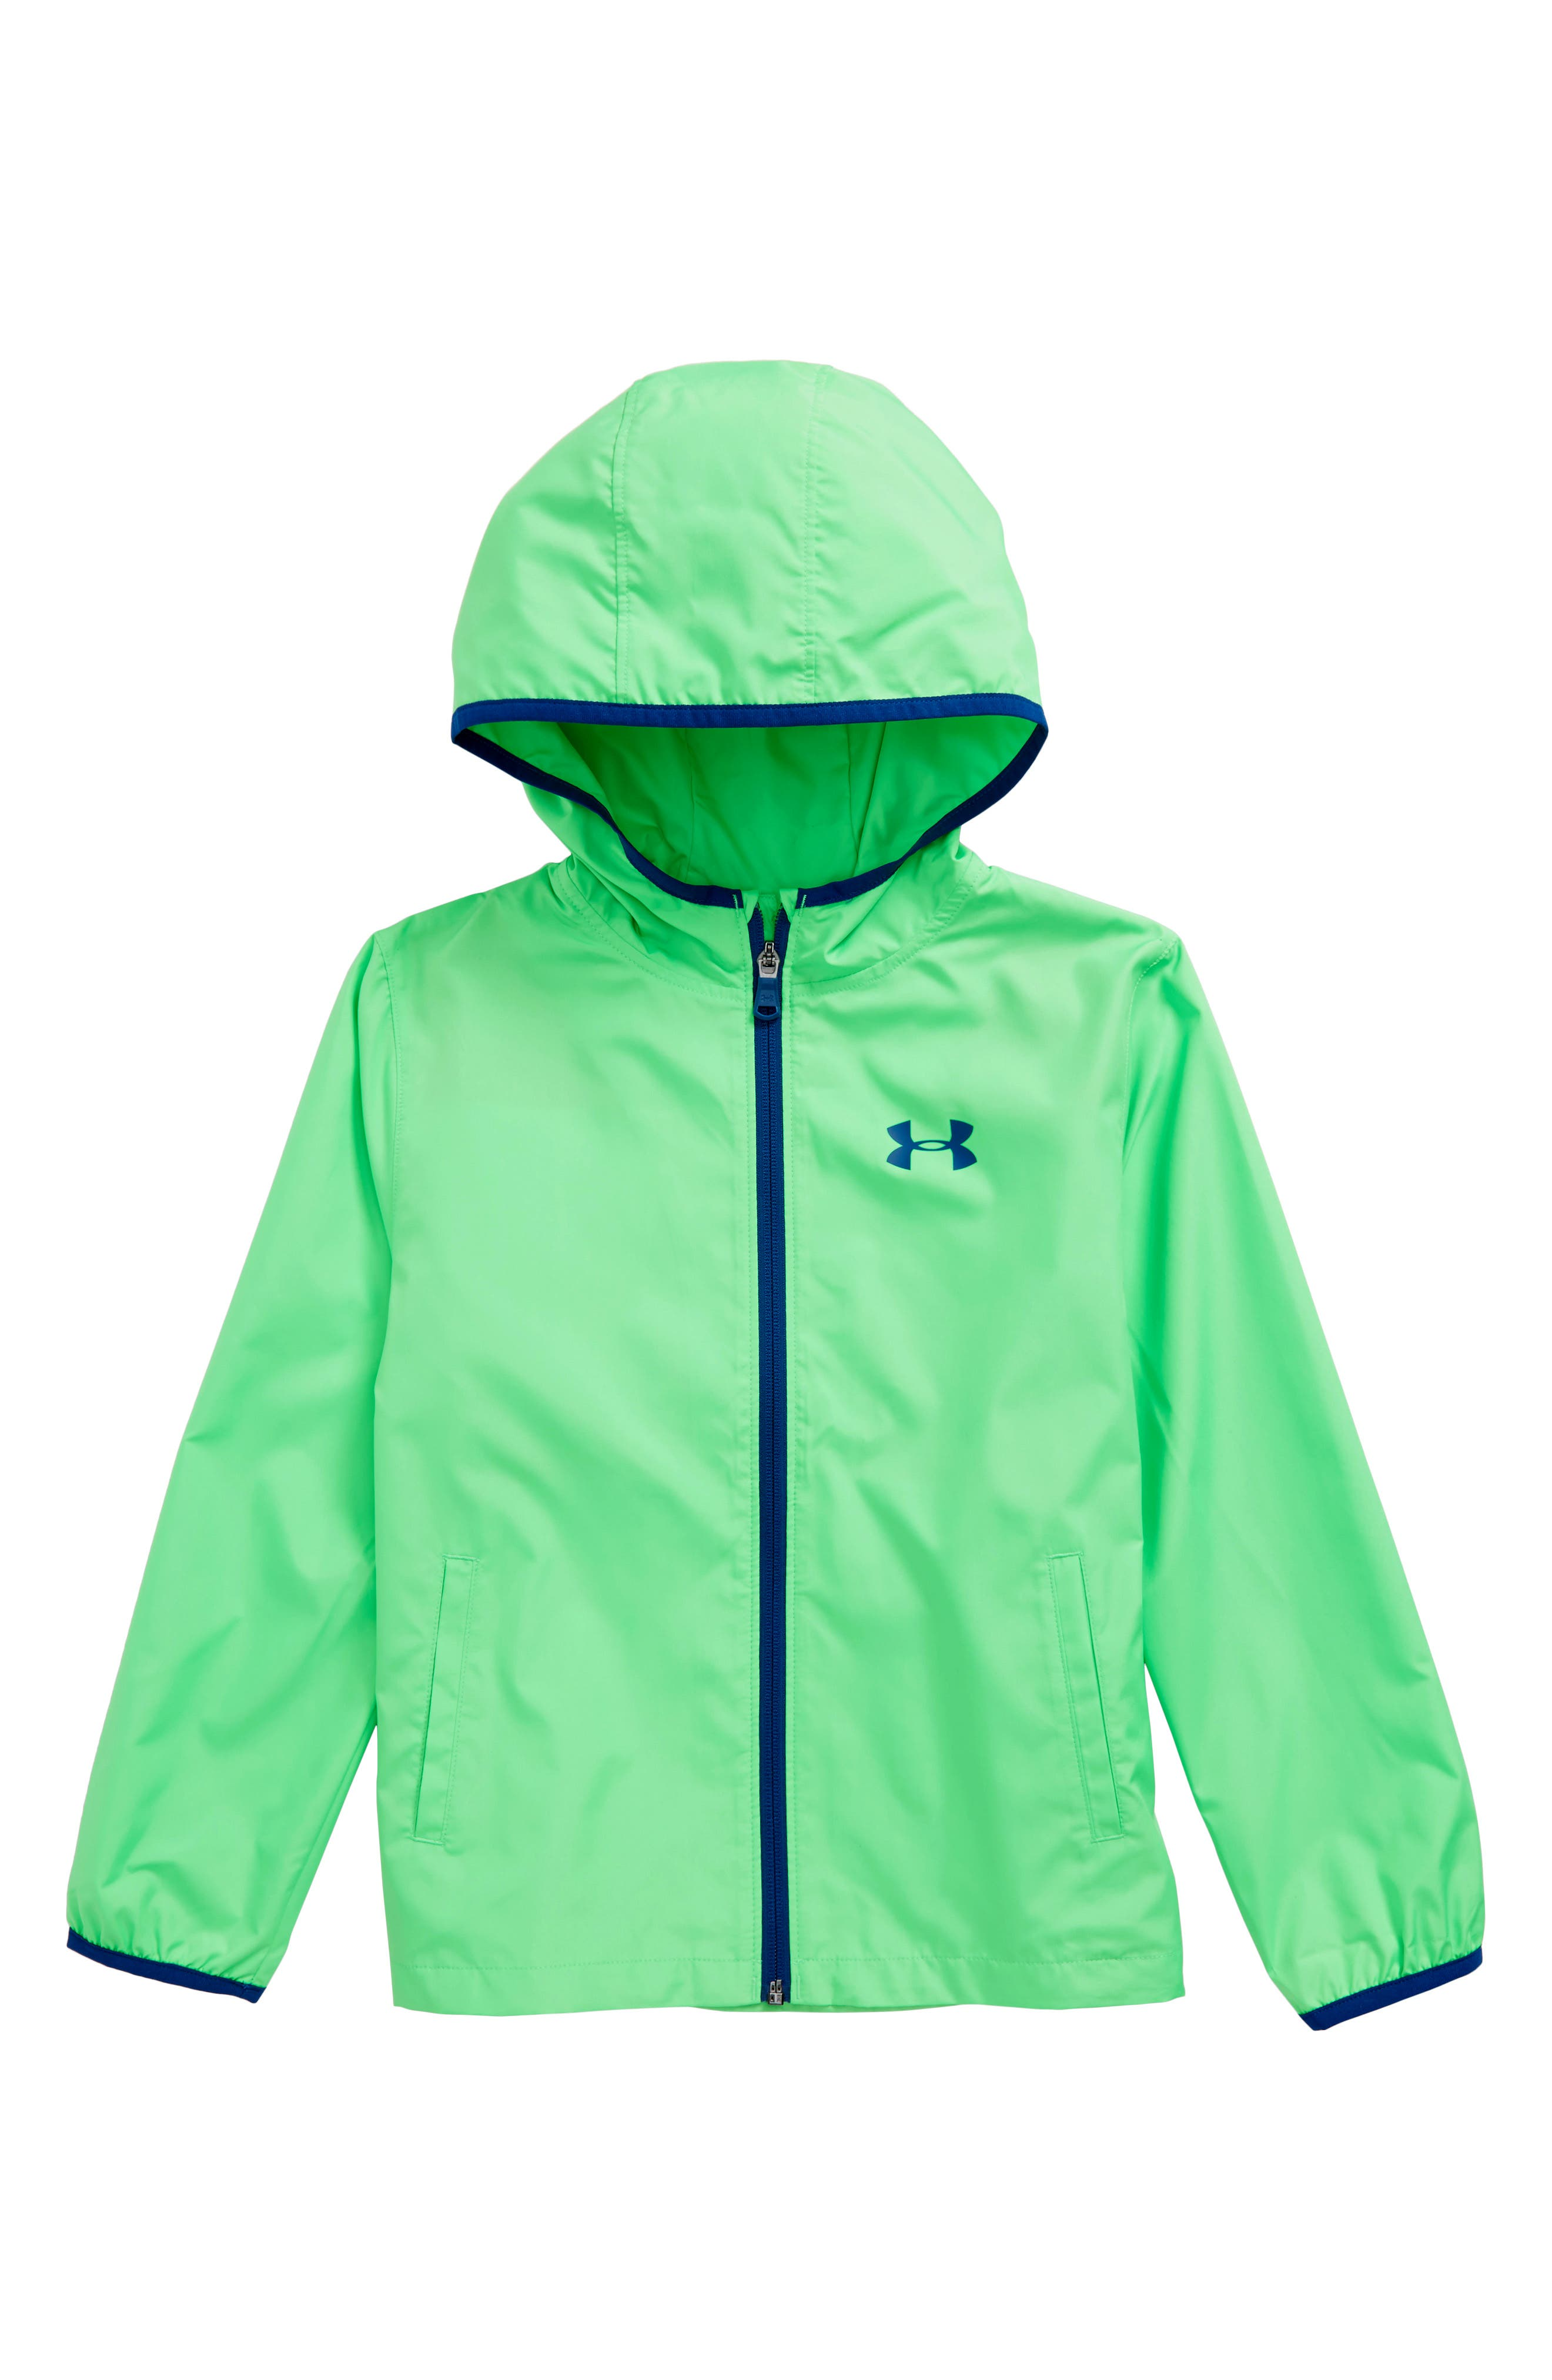 Sackpack Wind & Water Resistant Jacket,                             Main thumbnail 1, color,                             ARENA GREEN/ MOROCCAN BLUE